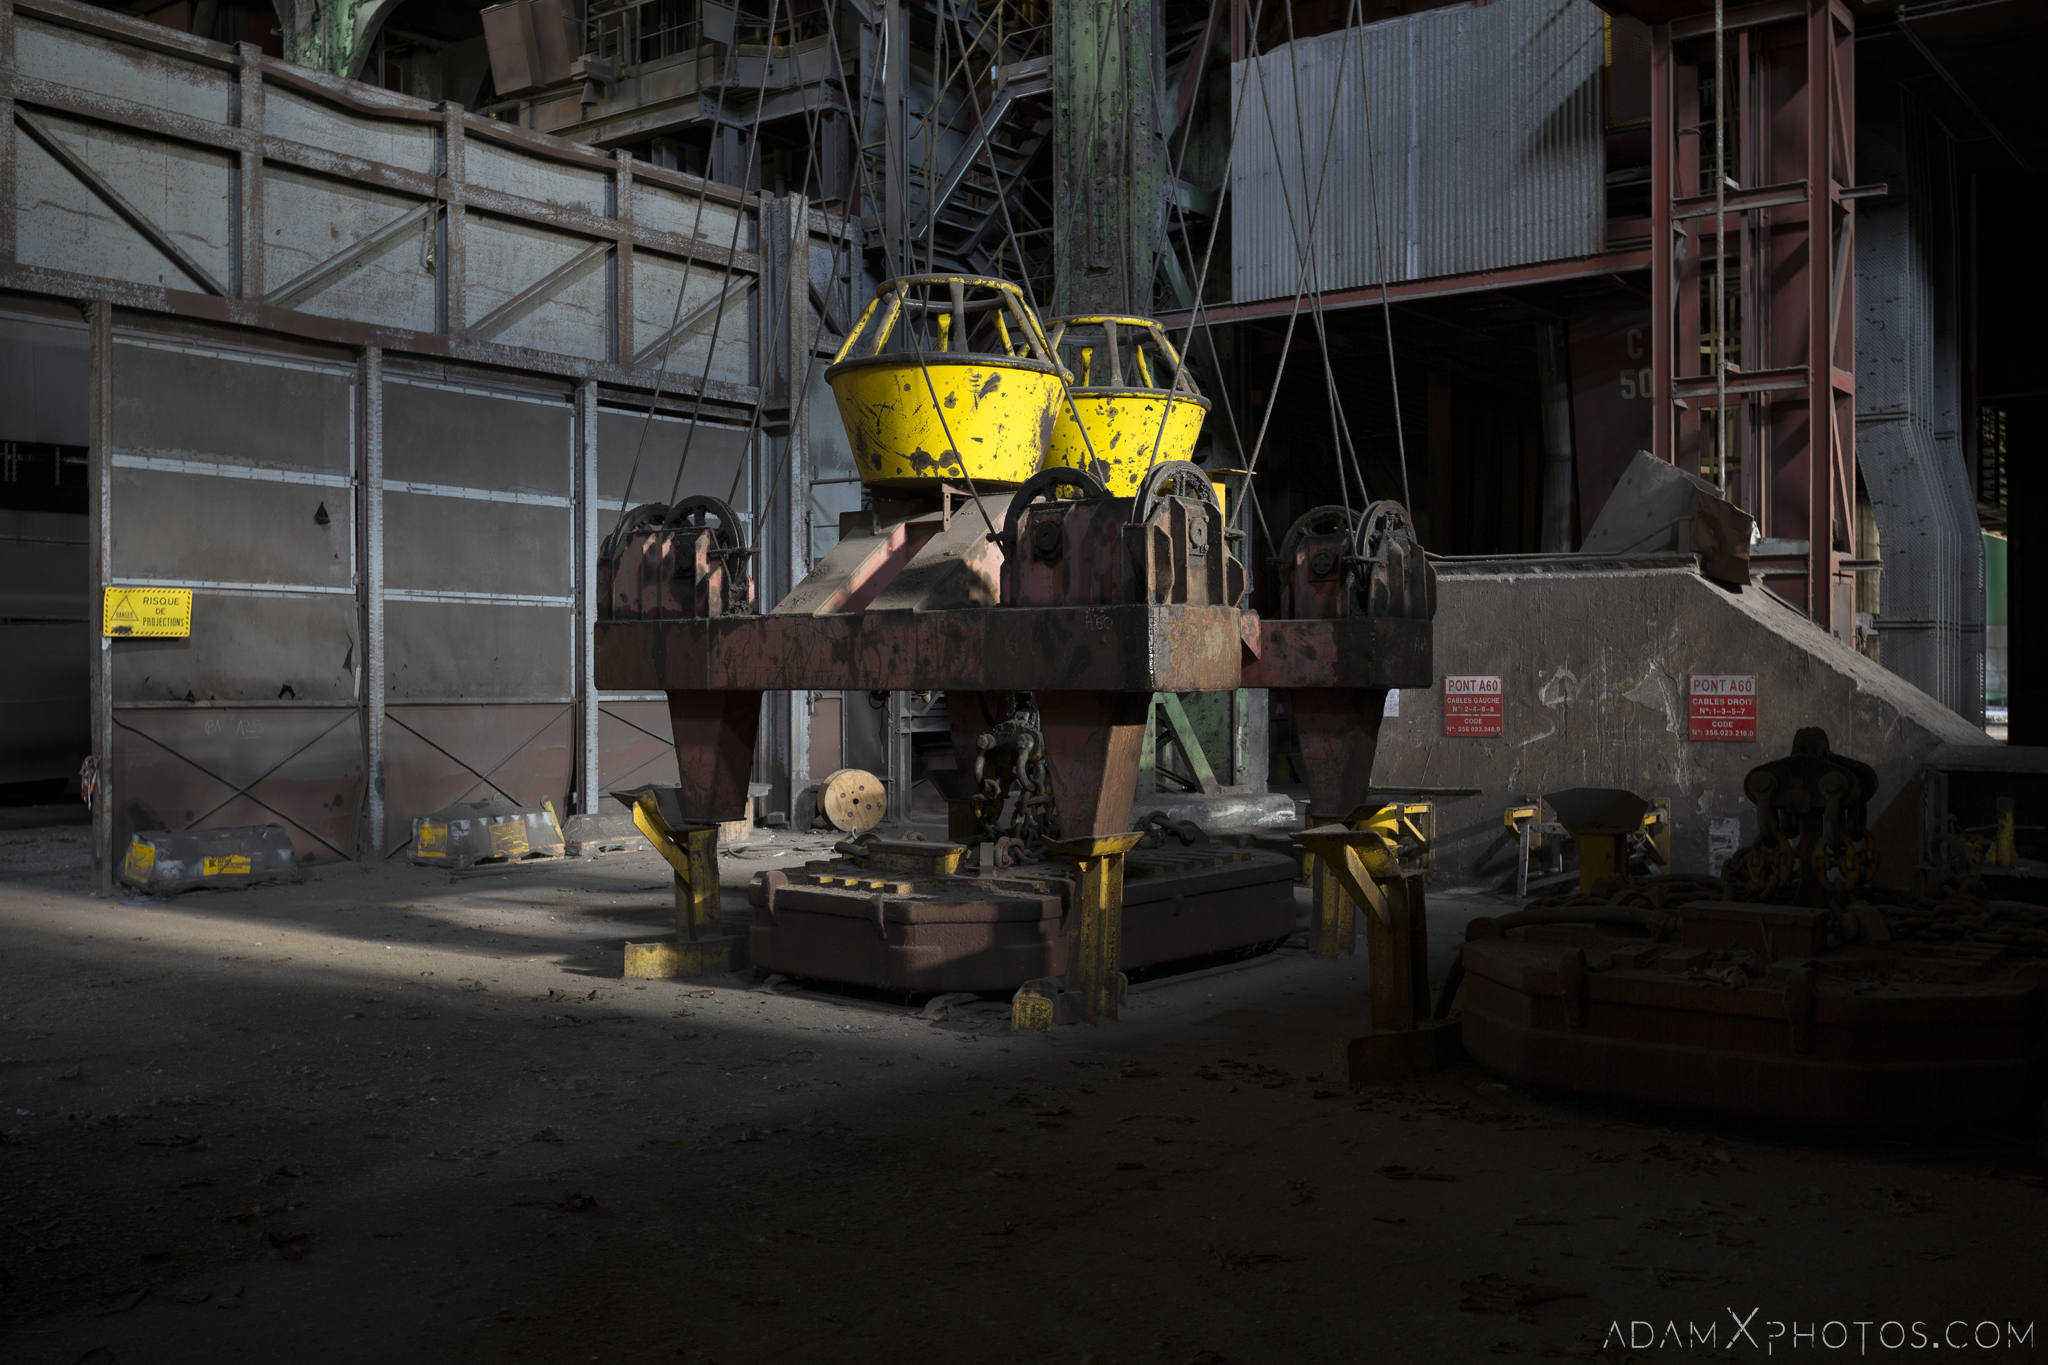 electromagnetic crane lifter winch HFX Florange Hayange ArcelorMittal blast furnaces steel works plant Industrial Industry Adam X Urbex Urban Exploration France Access 2017 Abandoned decay lost forgotten derelict location creepy haunting eerie